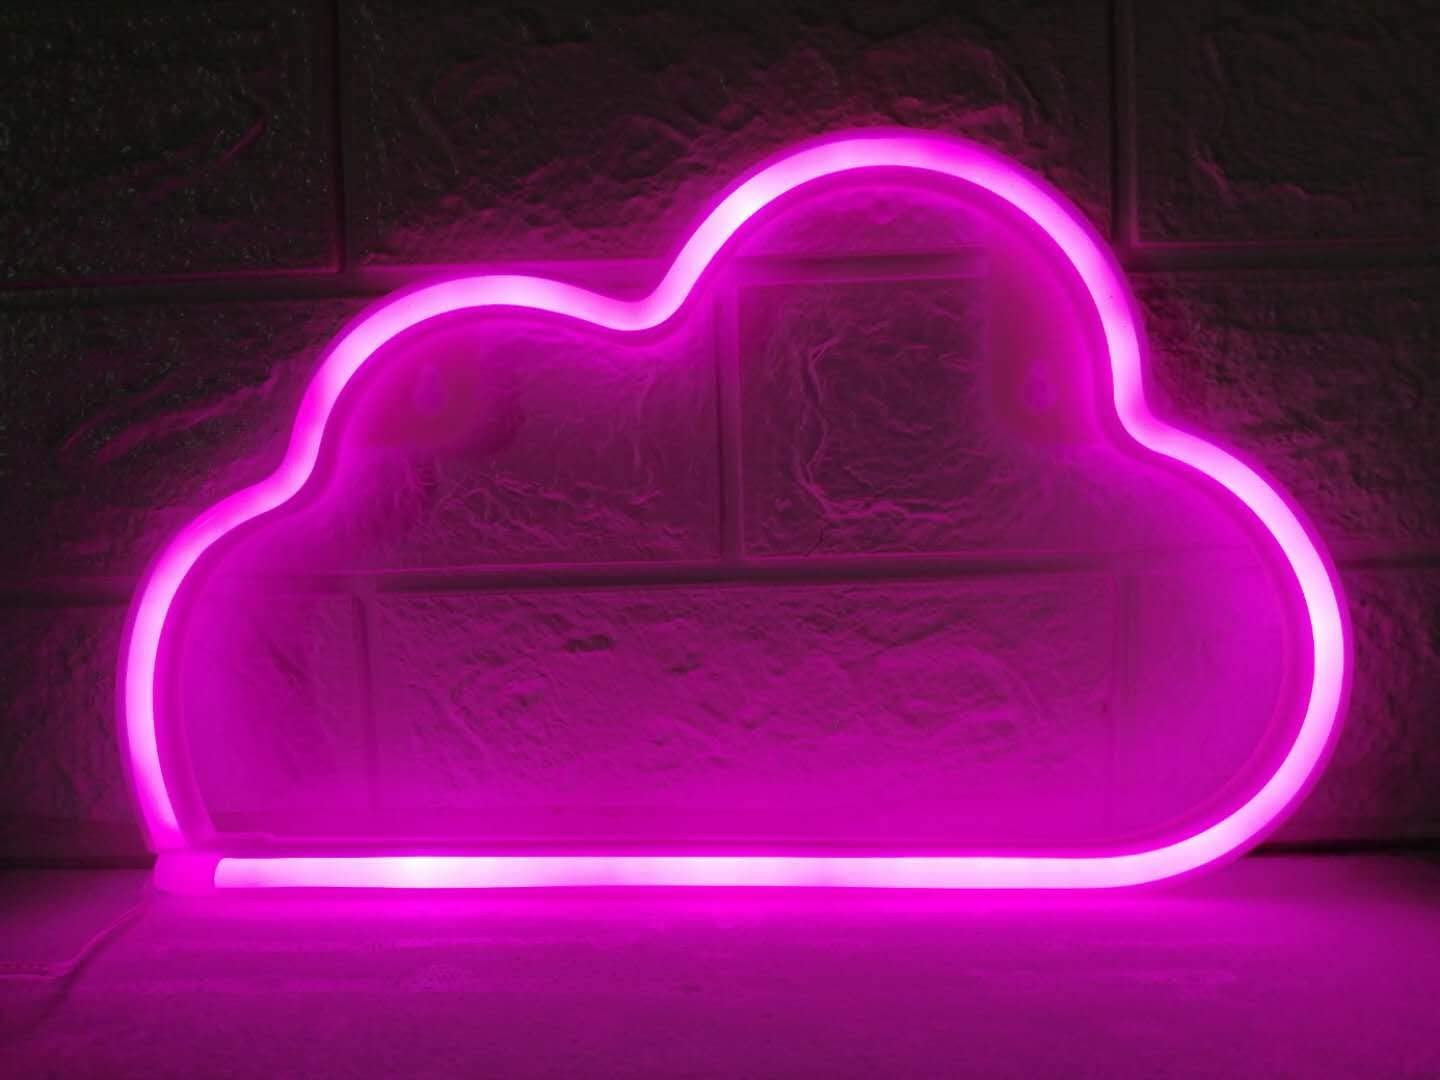 LDGJ Cloud Light Neon Signs Neon Lights for Wall Decor,USB or Battery LED Signs for Bedroom, Decorative Neon Light Sign for Christmas,Birthday Party, Living Room, Girls,Kids Room(Pink)